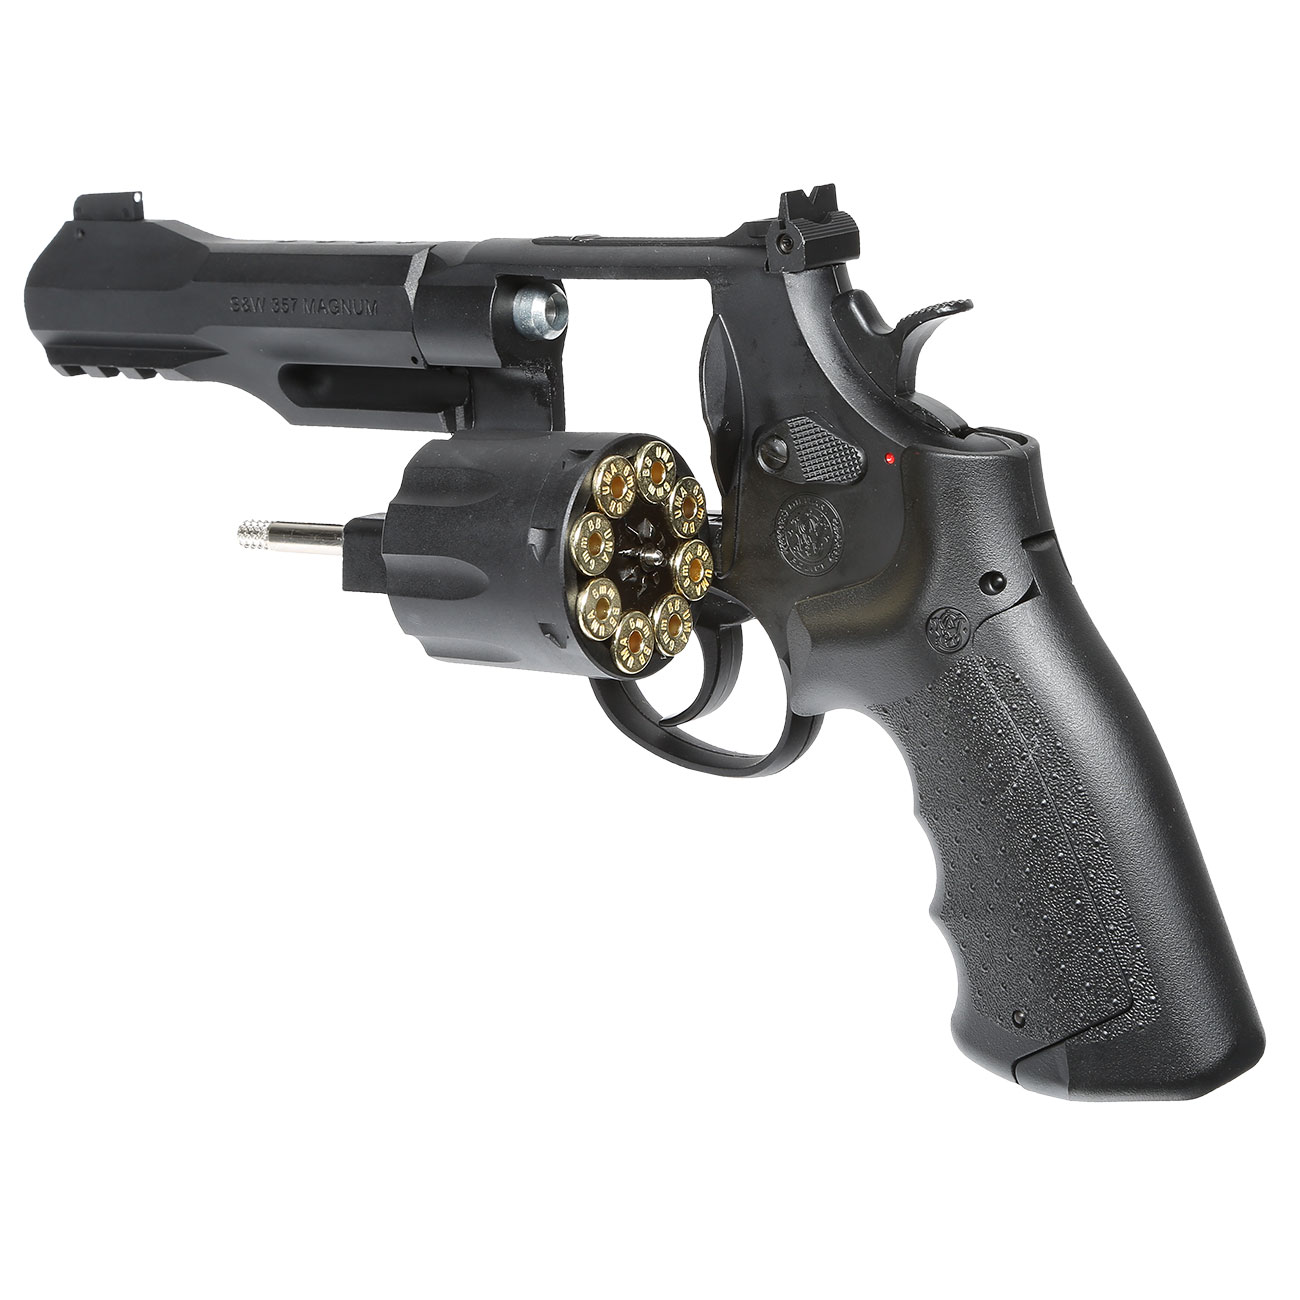 Smith & Wesson M&P R8 4 Zoll CO2 Revolver 6mm BB schwarz 4